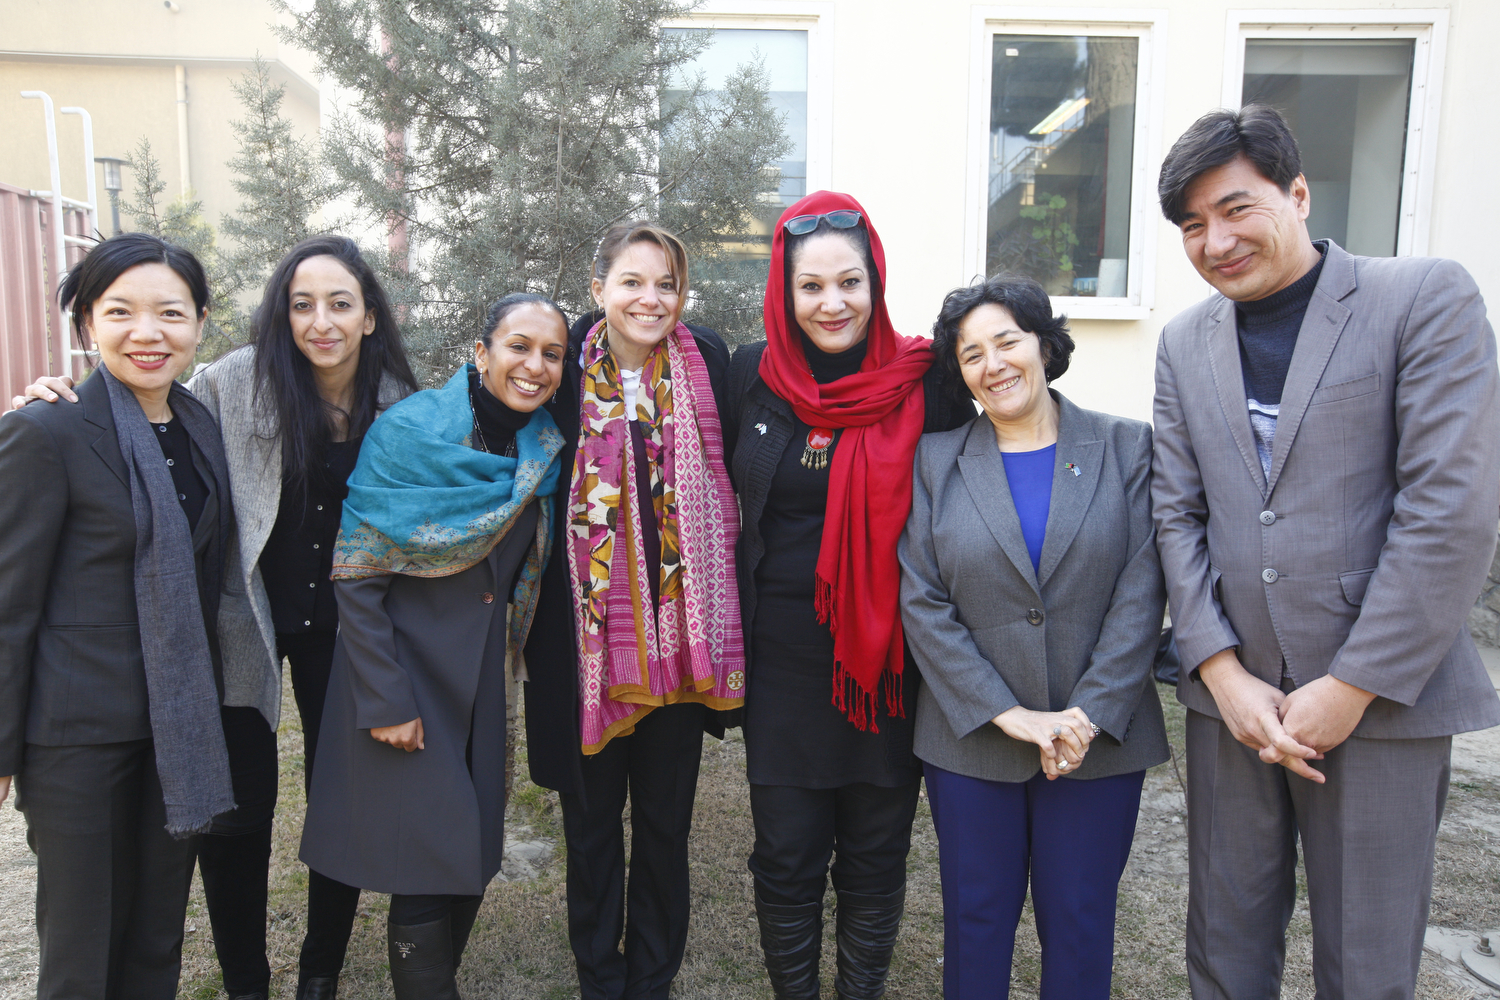 Leila Zerrougui poses with colleagues from UNAMA at the end of her mission to Afghanistan. ©UNAMA